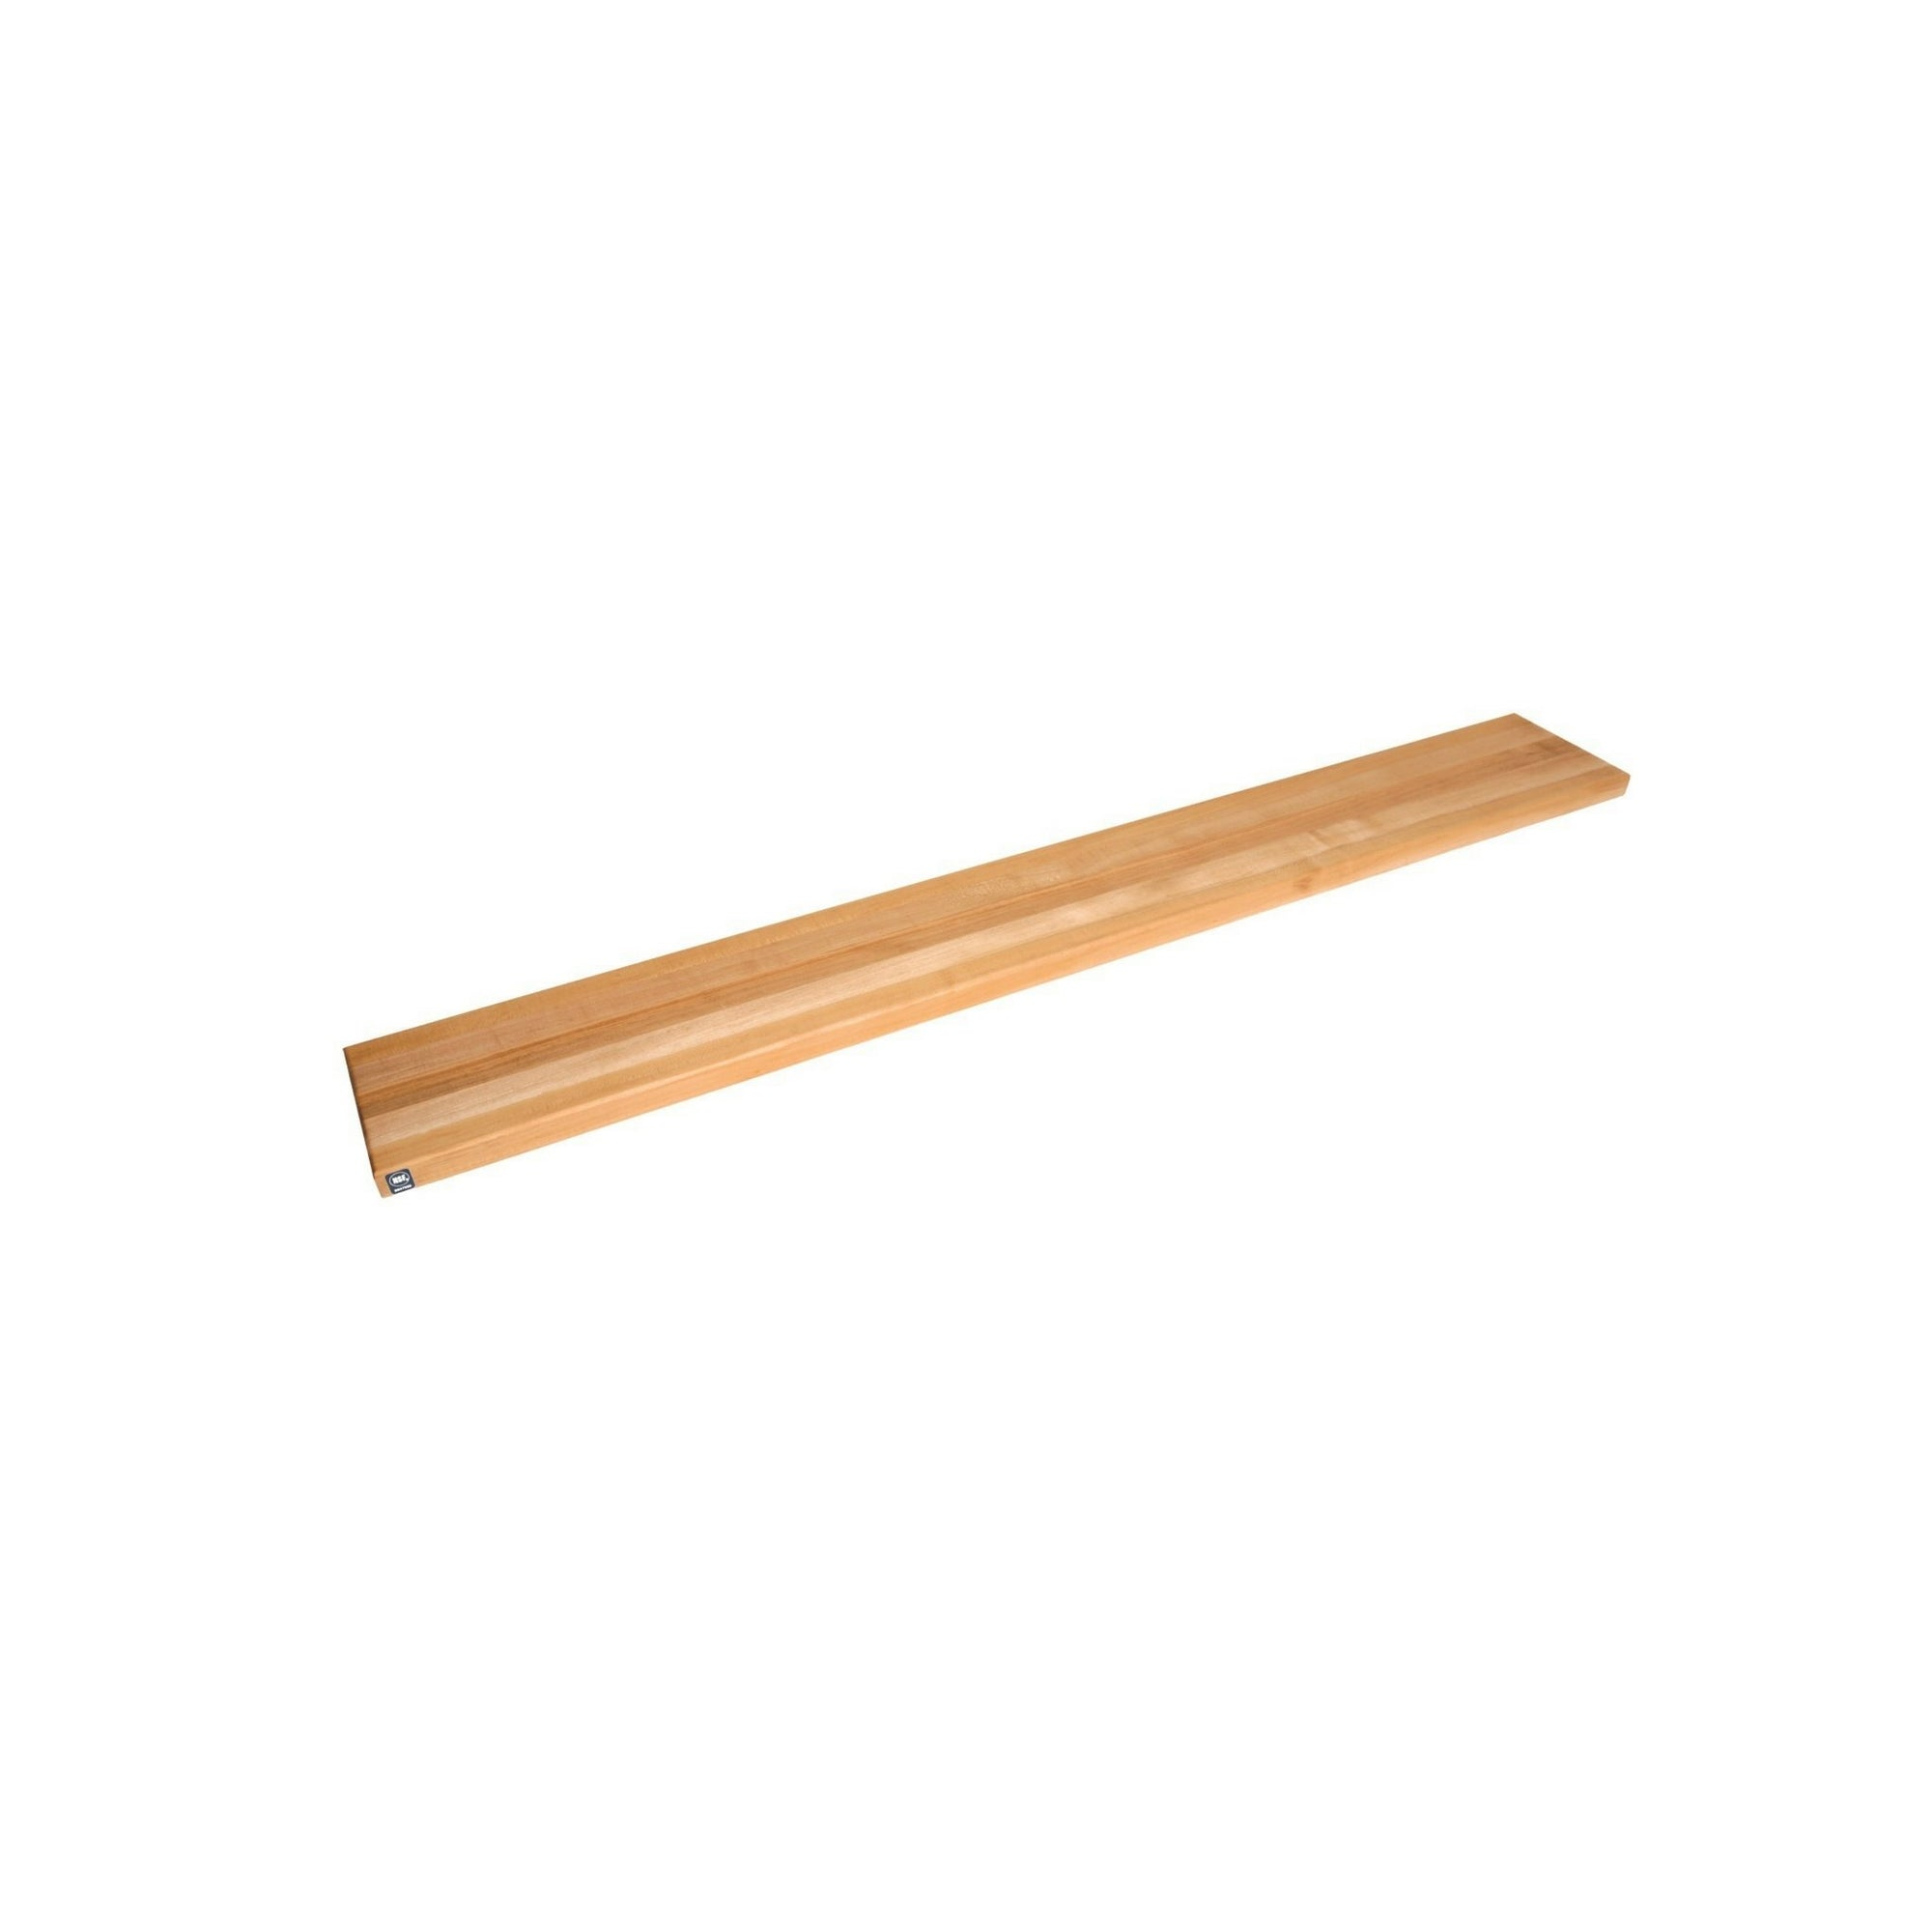 "Maple Sandwich Boards 1¼"" Thick"